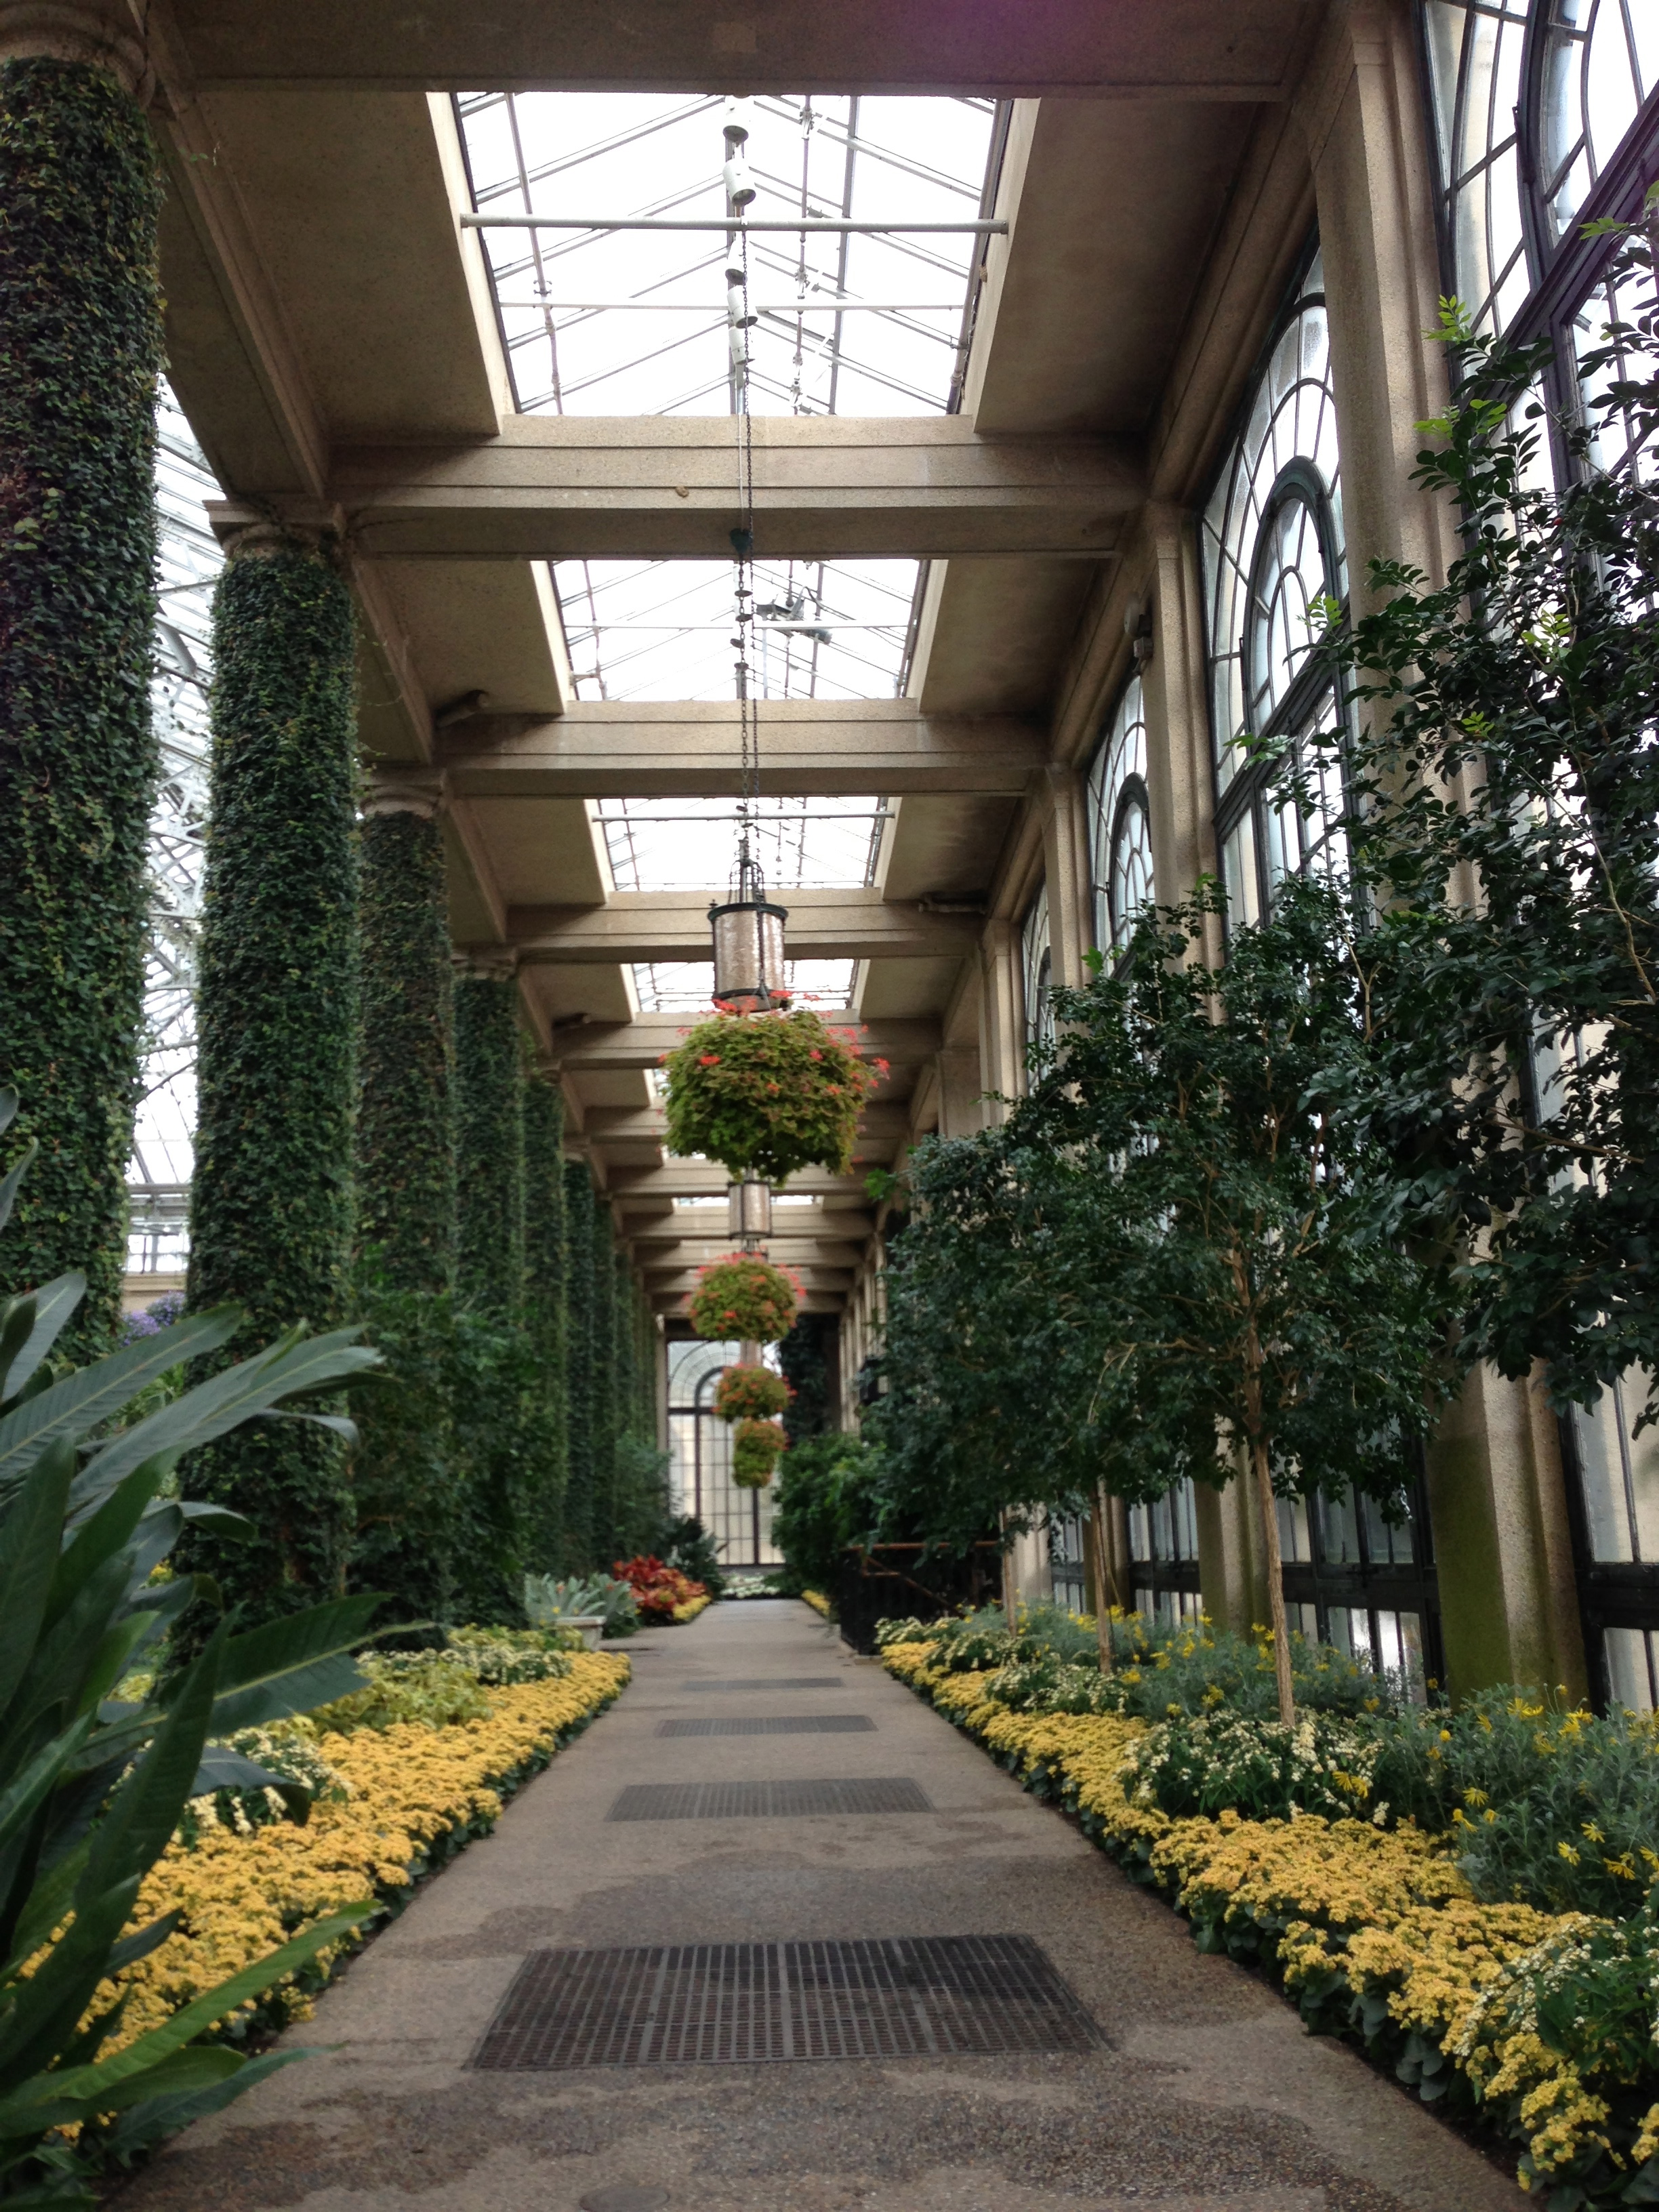 Luminous clarity, sparkling nature...the conservatory at Longwood Gardens